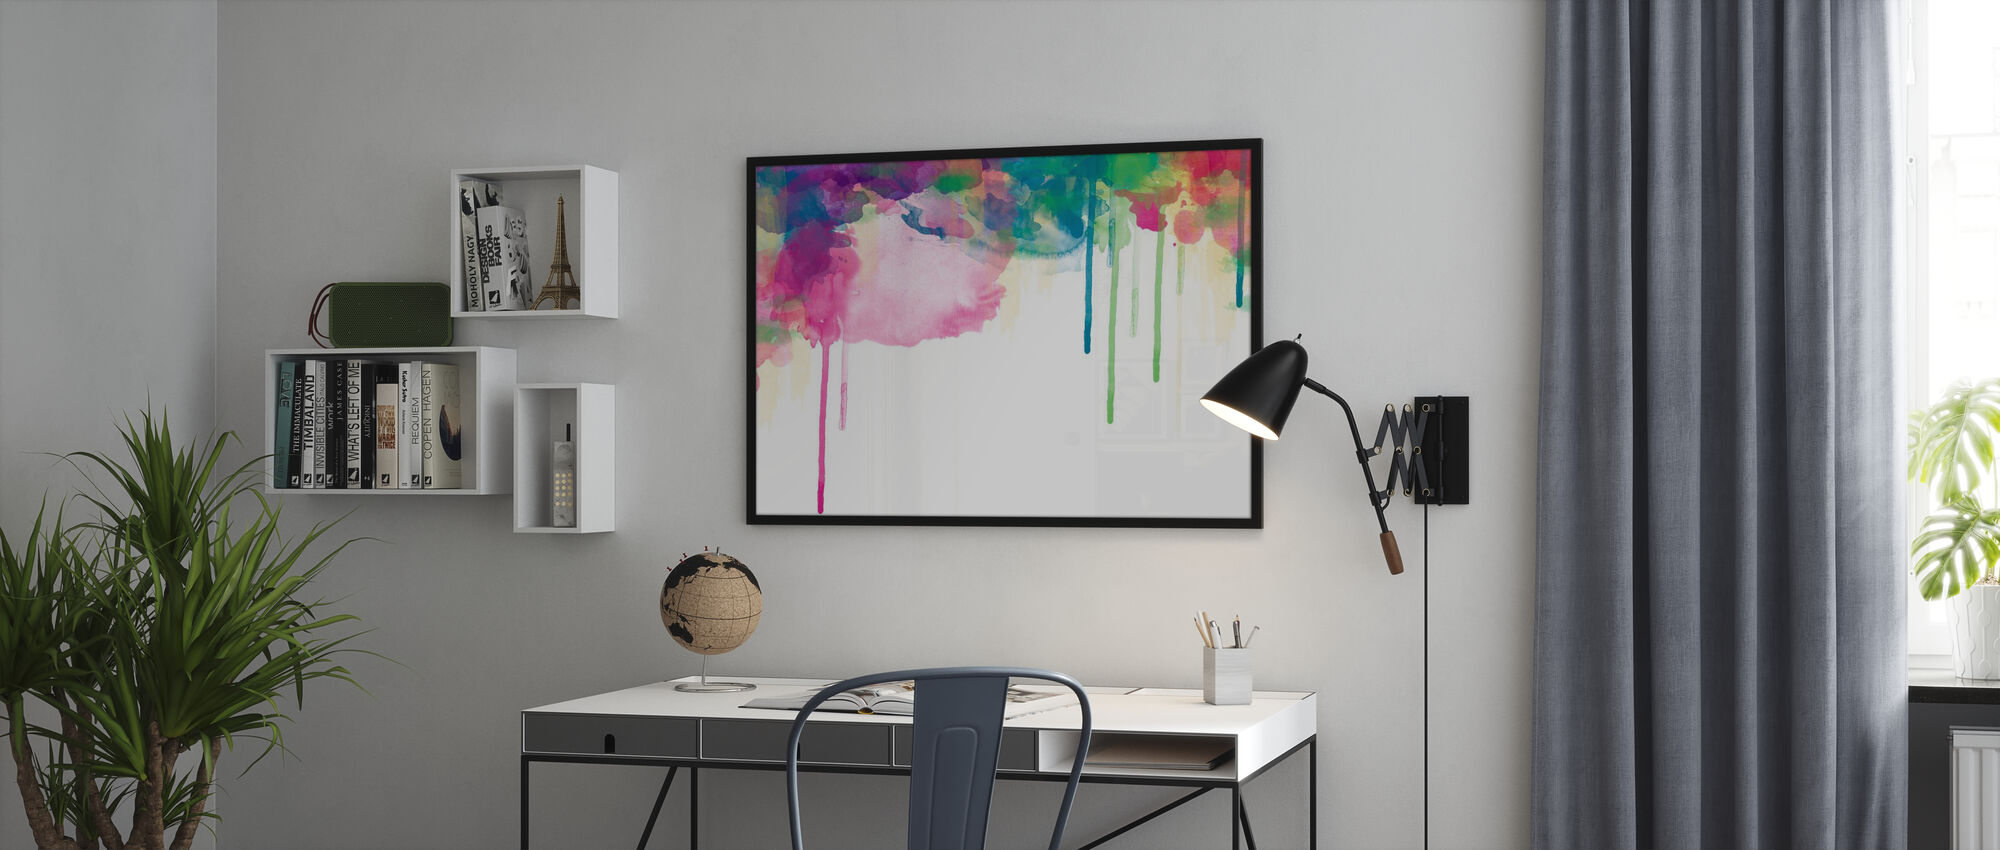 Colour Drips - Poster - Office